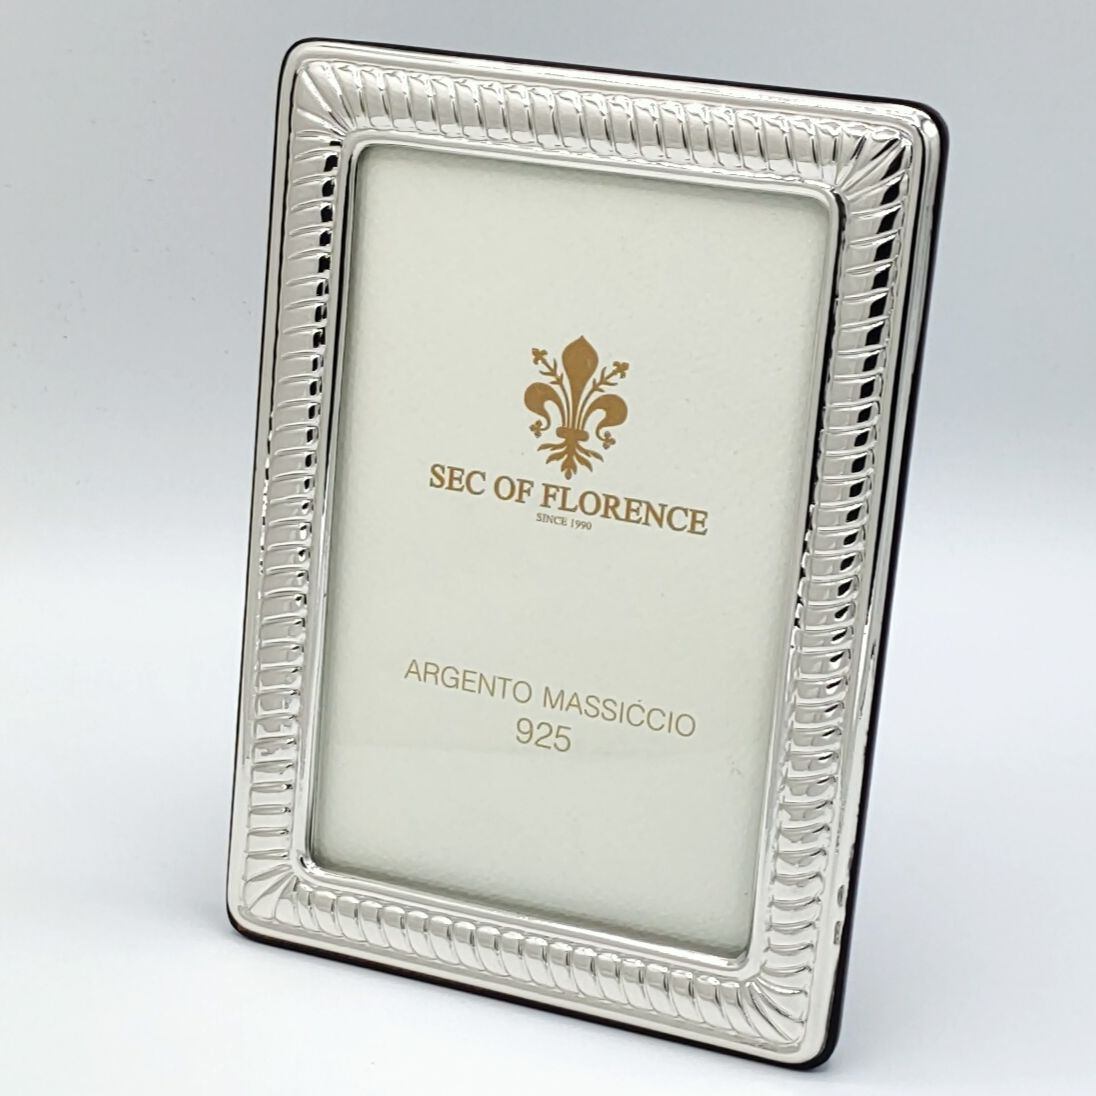 Handmade Sterling Silver Photo Picture Frame 1021 10x15 Gb New 3 9 X 5 9 Inches In 2020 Frame Handmade Handmade Sterling Silver